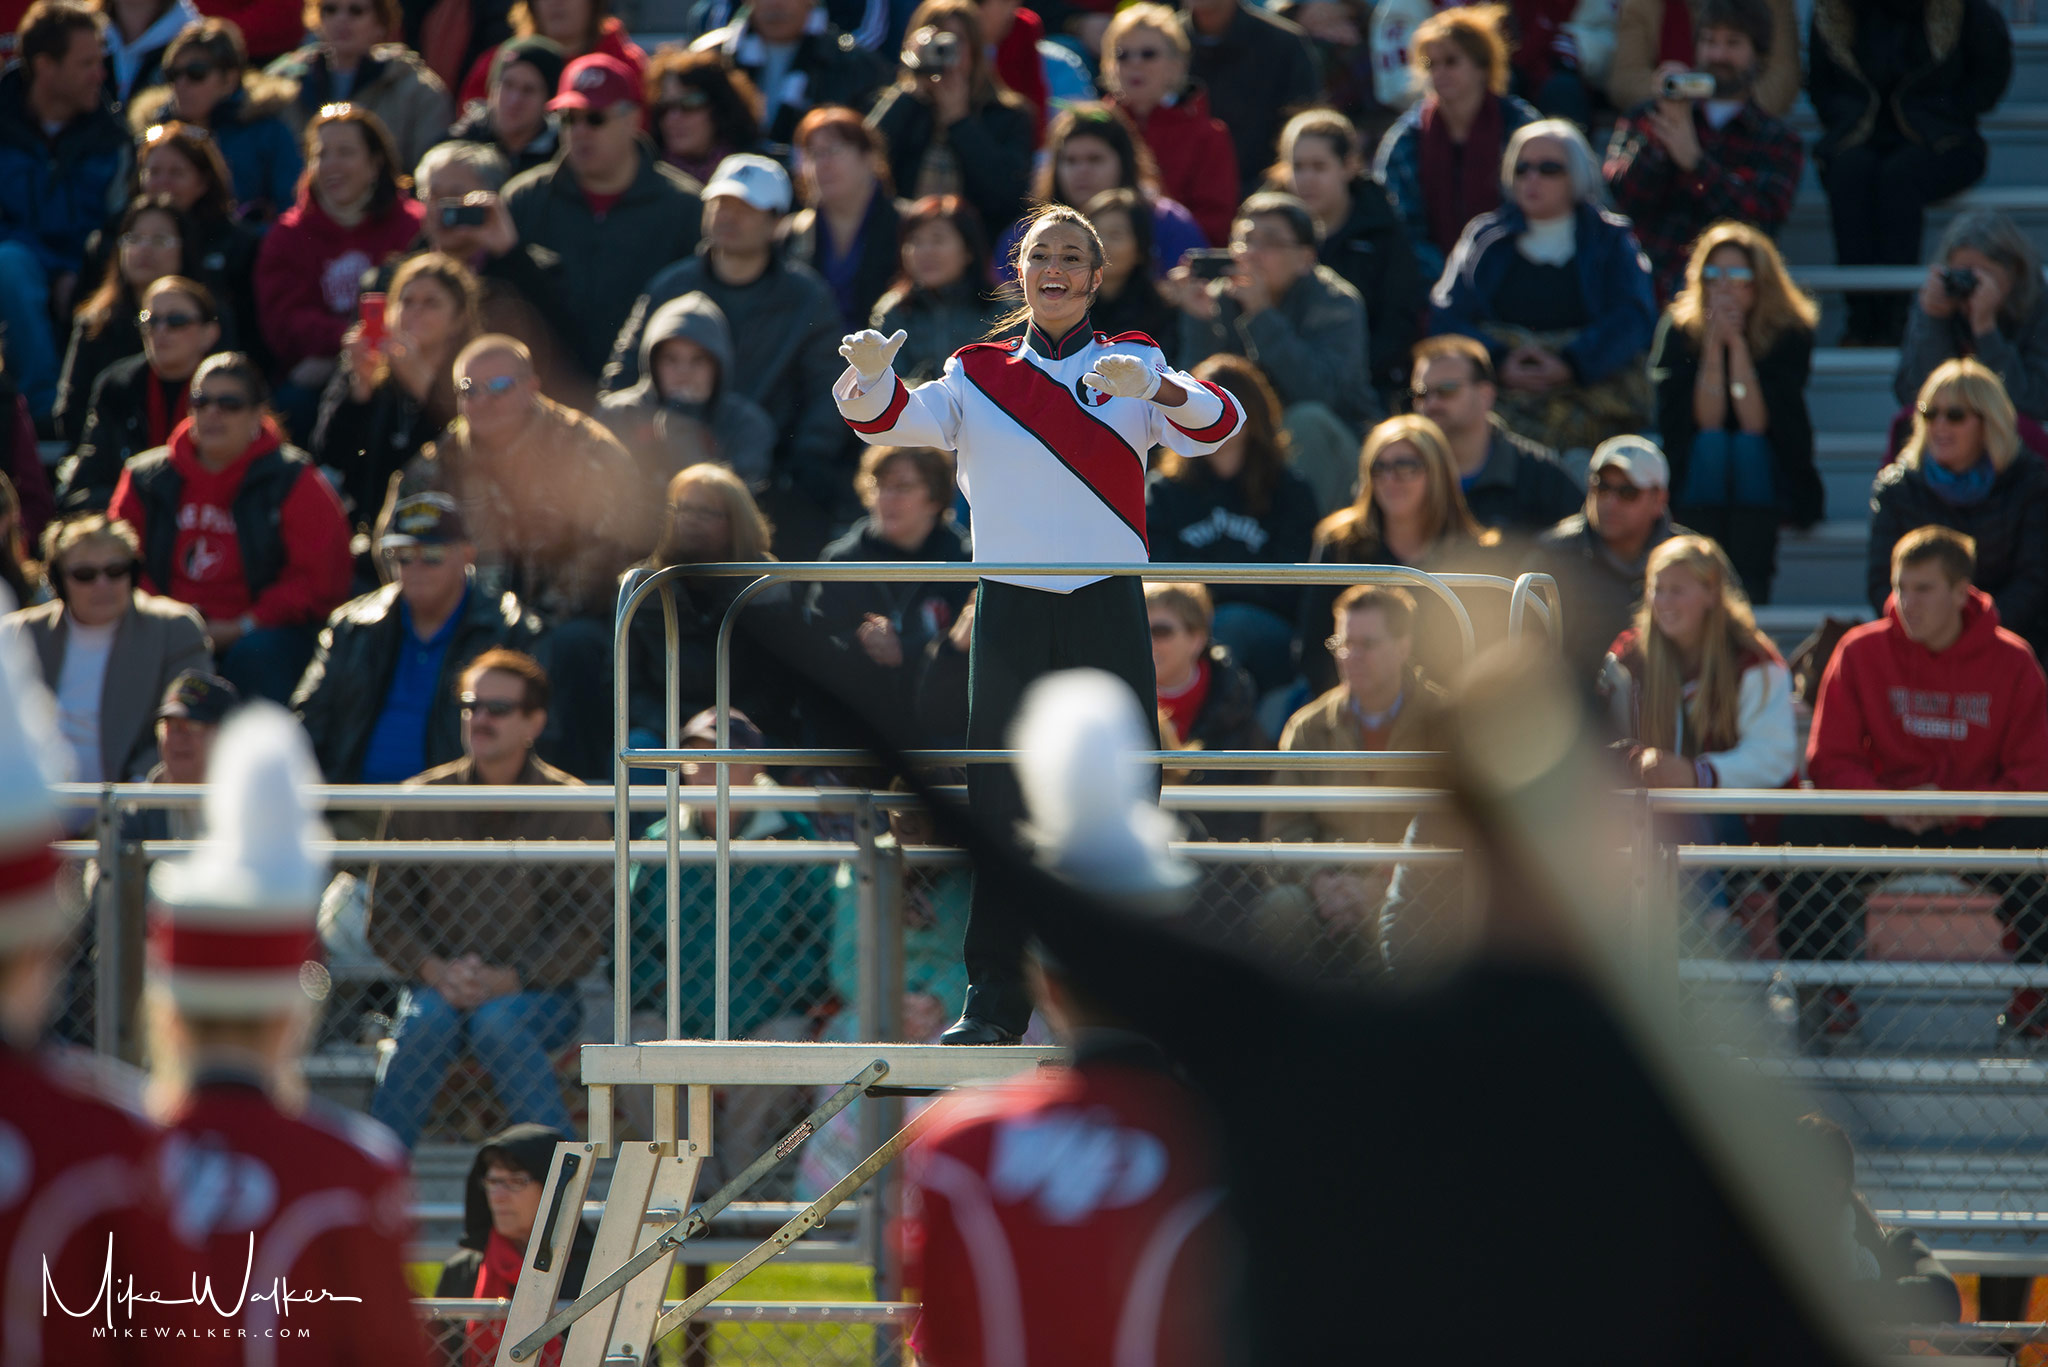 Drum major conducting a marching band in NJ. Event photography by Mike Walker.